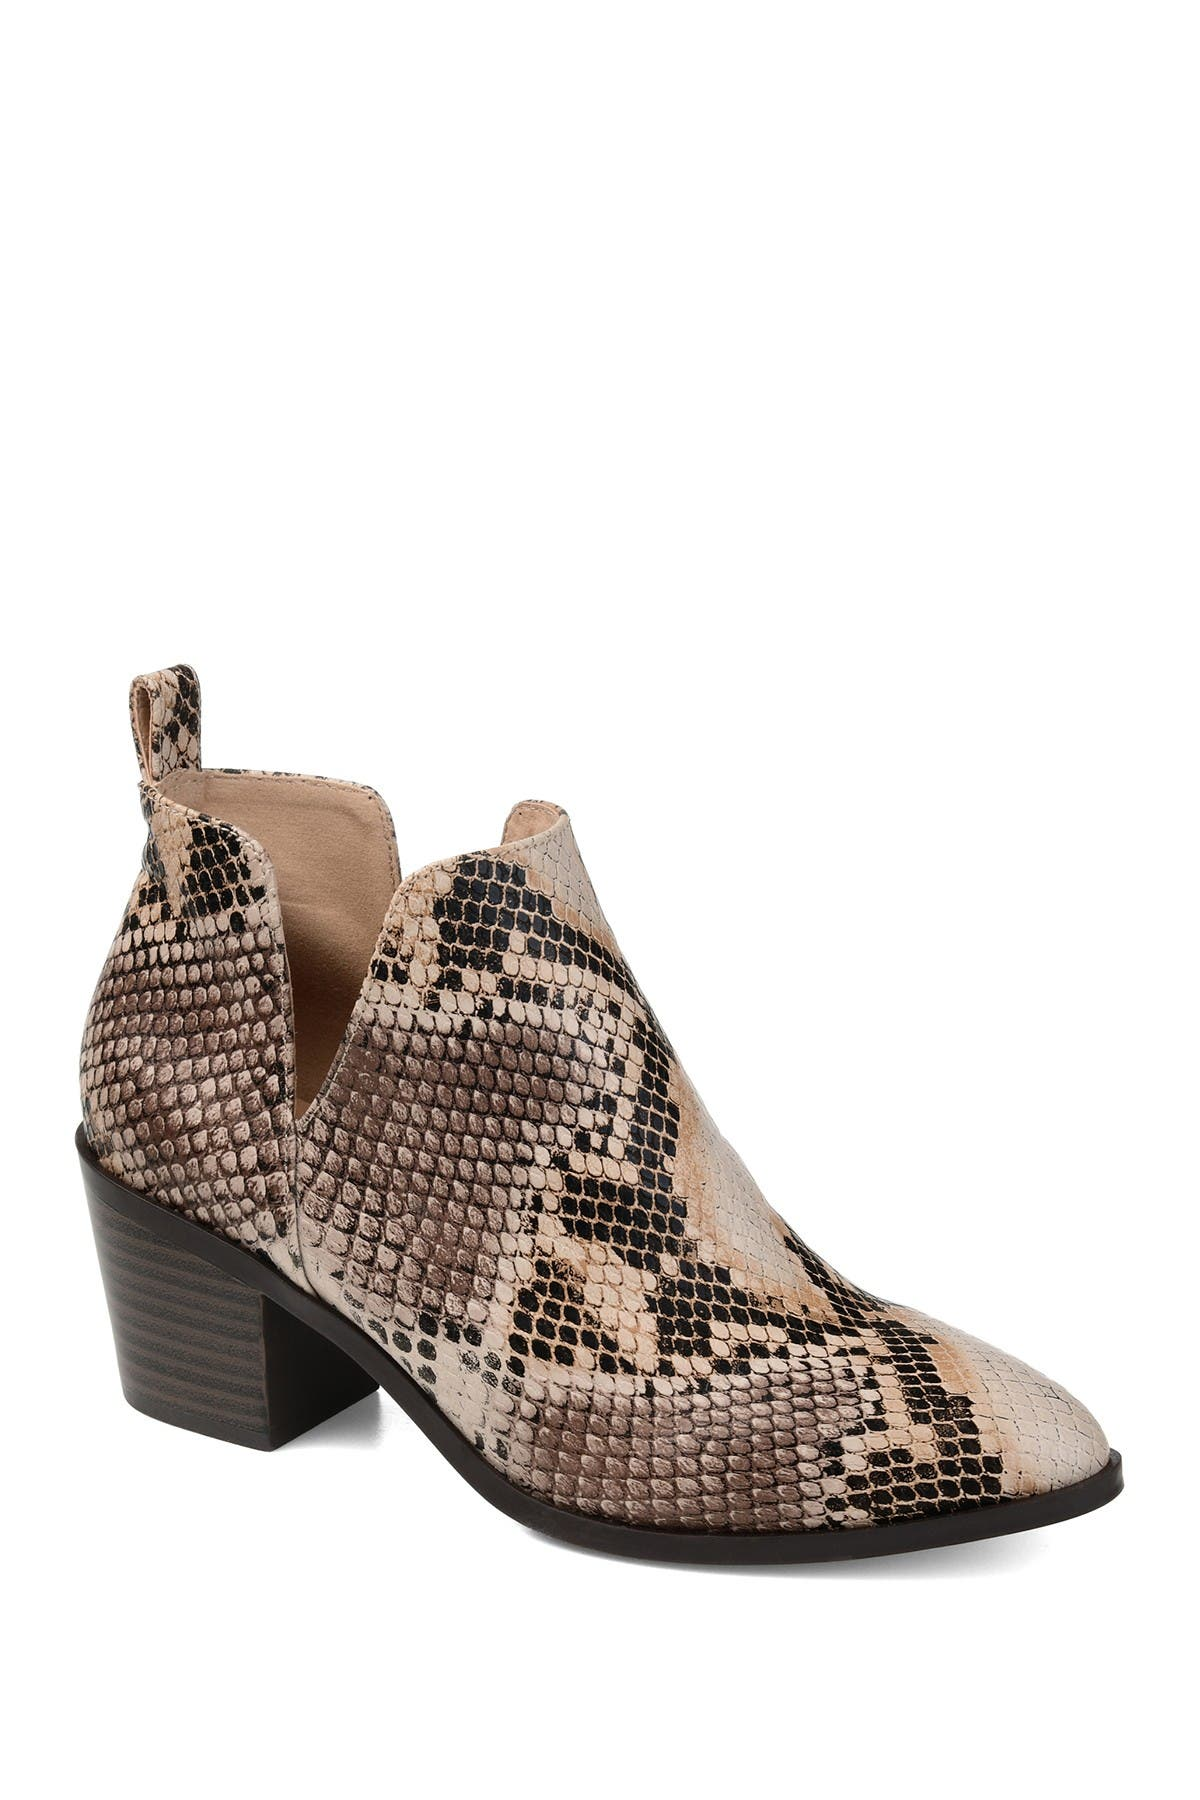 Image of JOURNEE Collection Lola Patterned Ankle Bootie